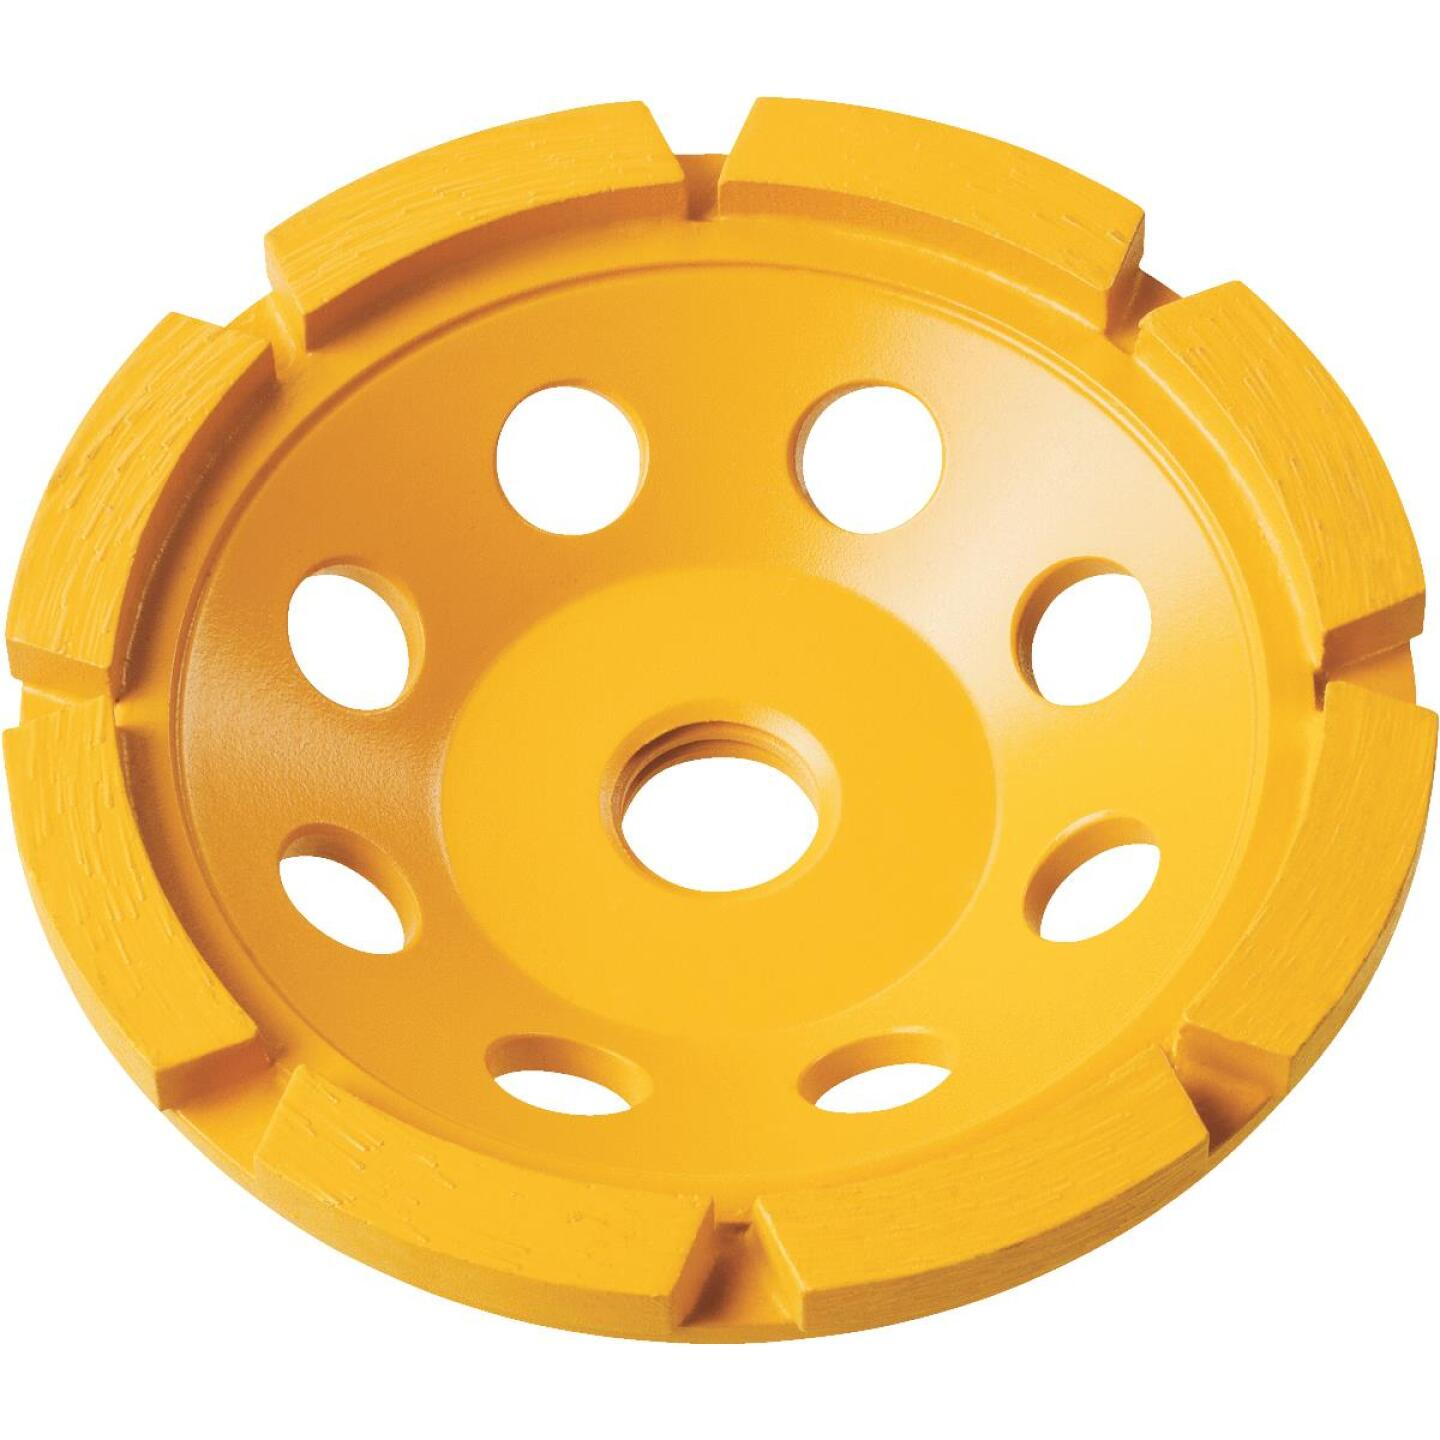 DeWalt 4 In. Single Row Diamond Cup Wheel Image 1